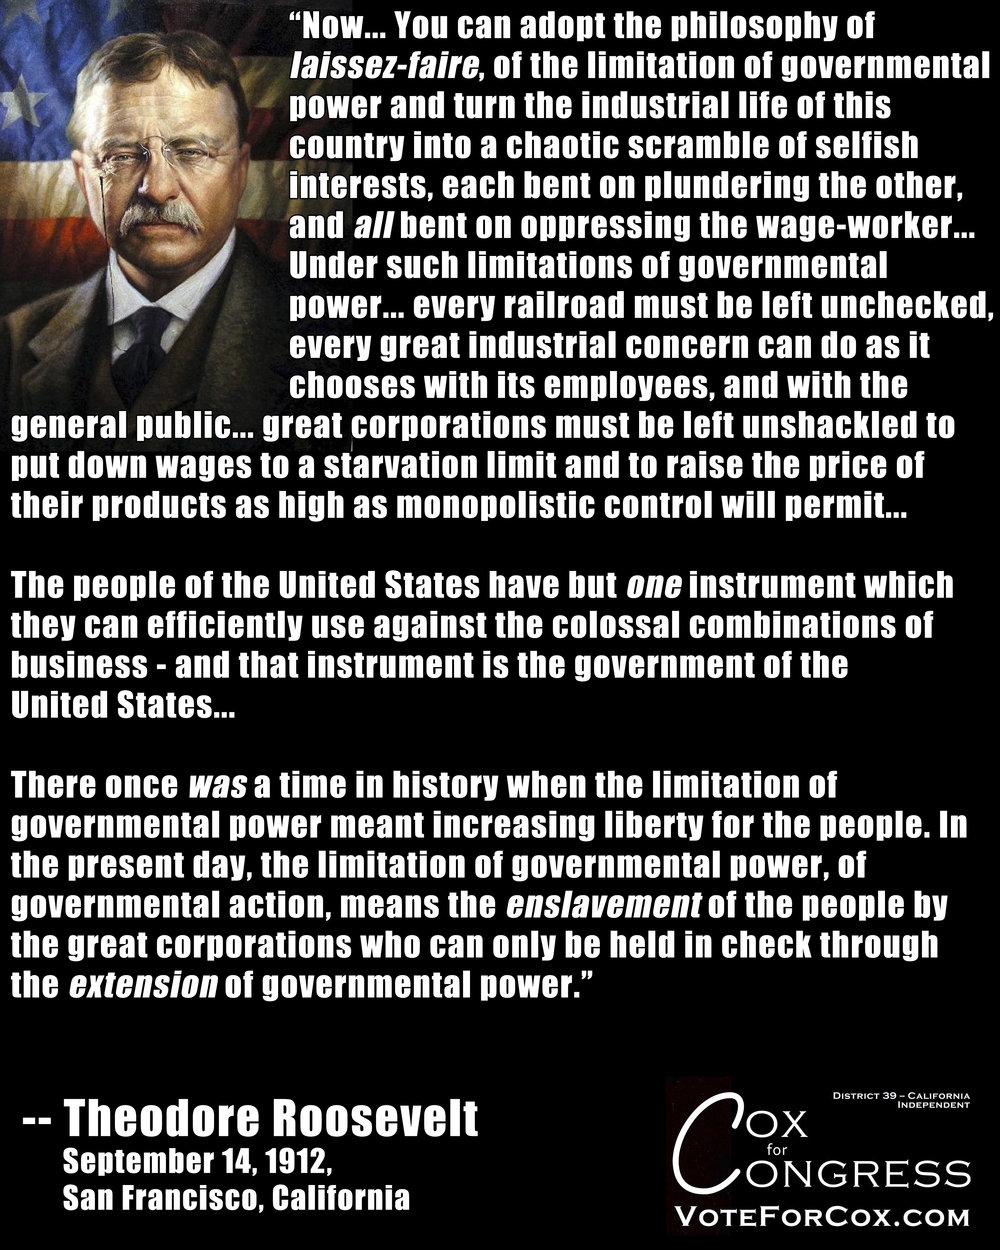 Part 2 of 2 from the same speech. Both excerpts designed to stand on their own in these graphics, but one directly precedes the other in the actual speech, which can be found in its entirety here:    http://www.theodore-roosevelt.com/images/research/txtspeeches/679.pdf